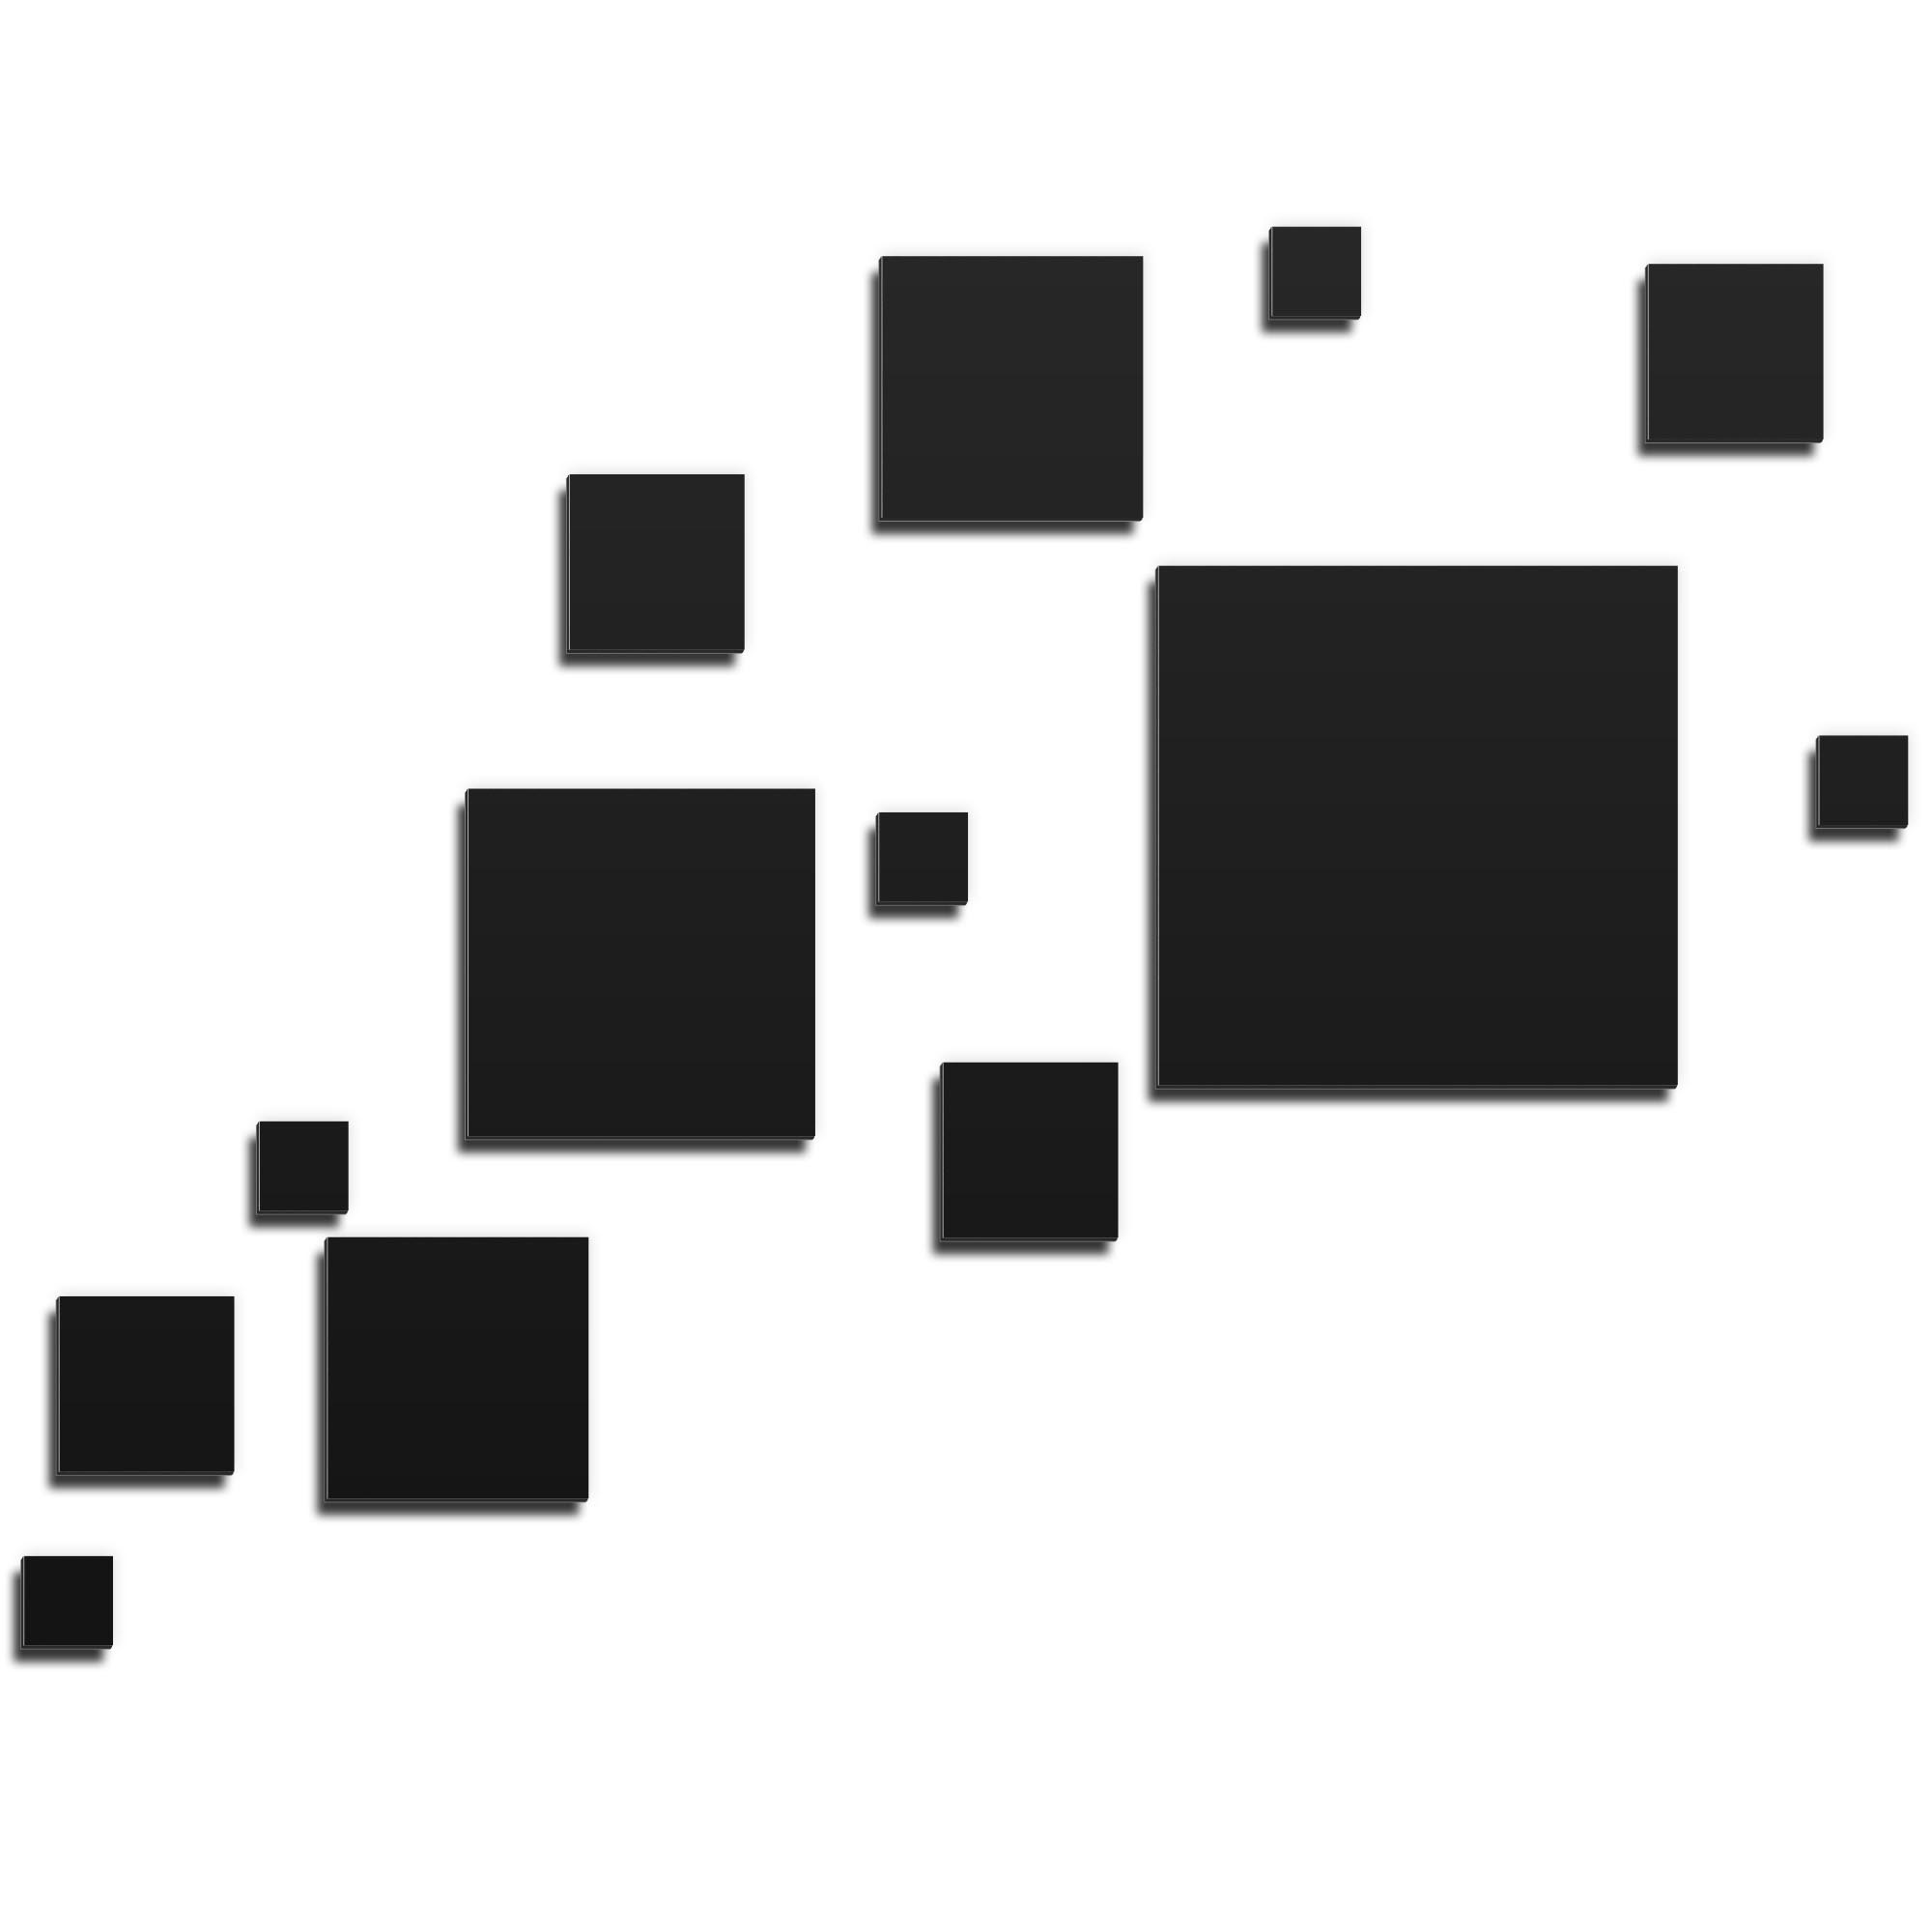 NAY 'Pixels Black' 66in x 50in Squares Abstract Art on Aluminum Composite